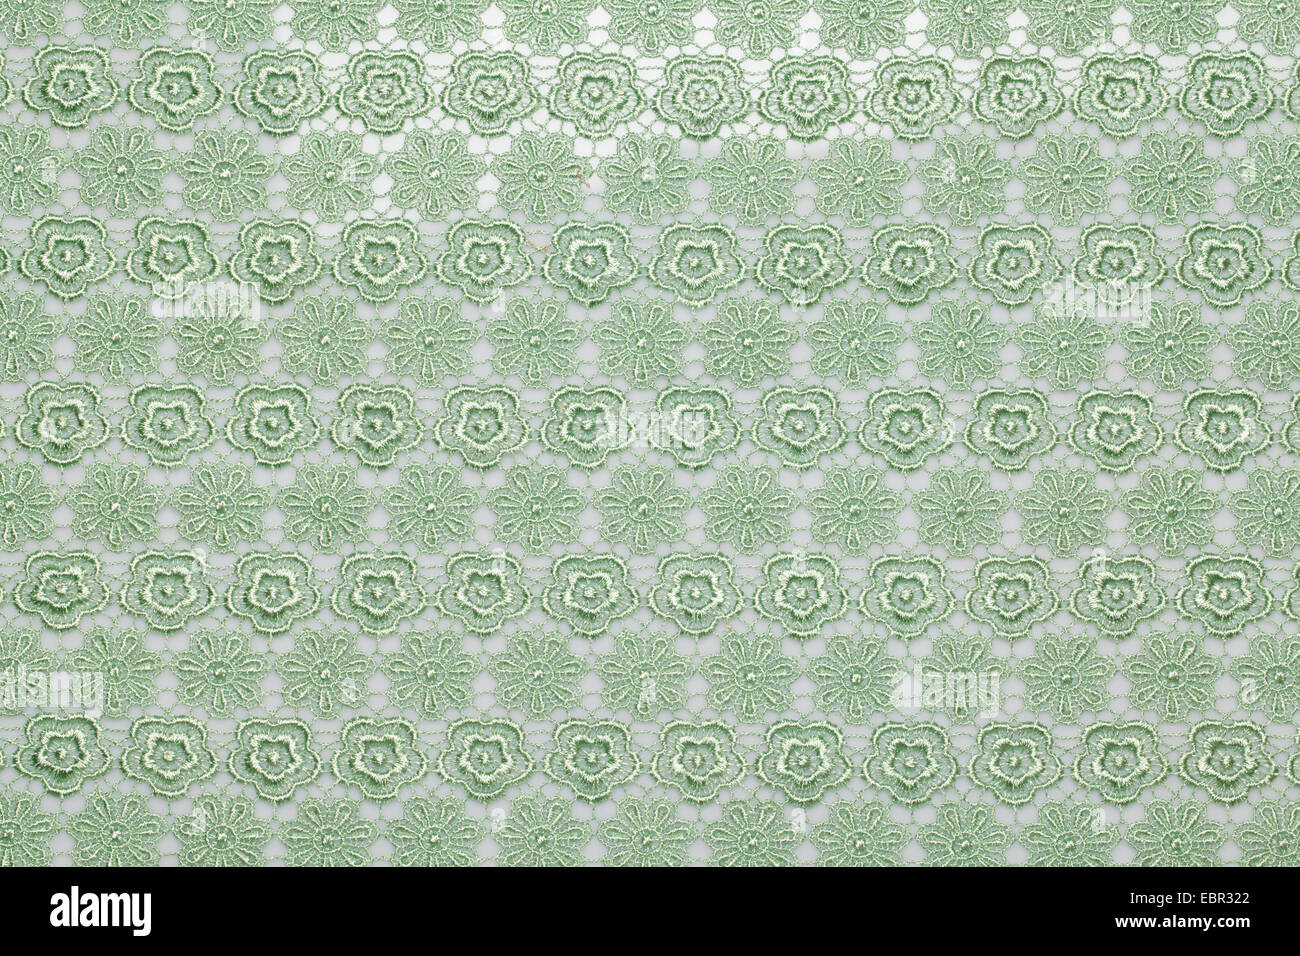 Seamless Green Lace Texture Use For Wallpaper Pattern Or Background